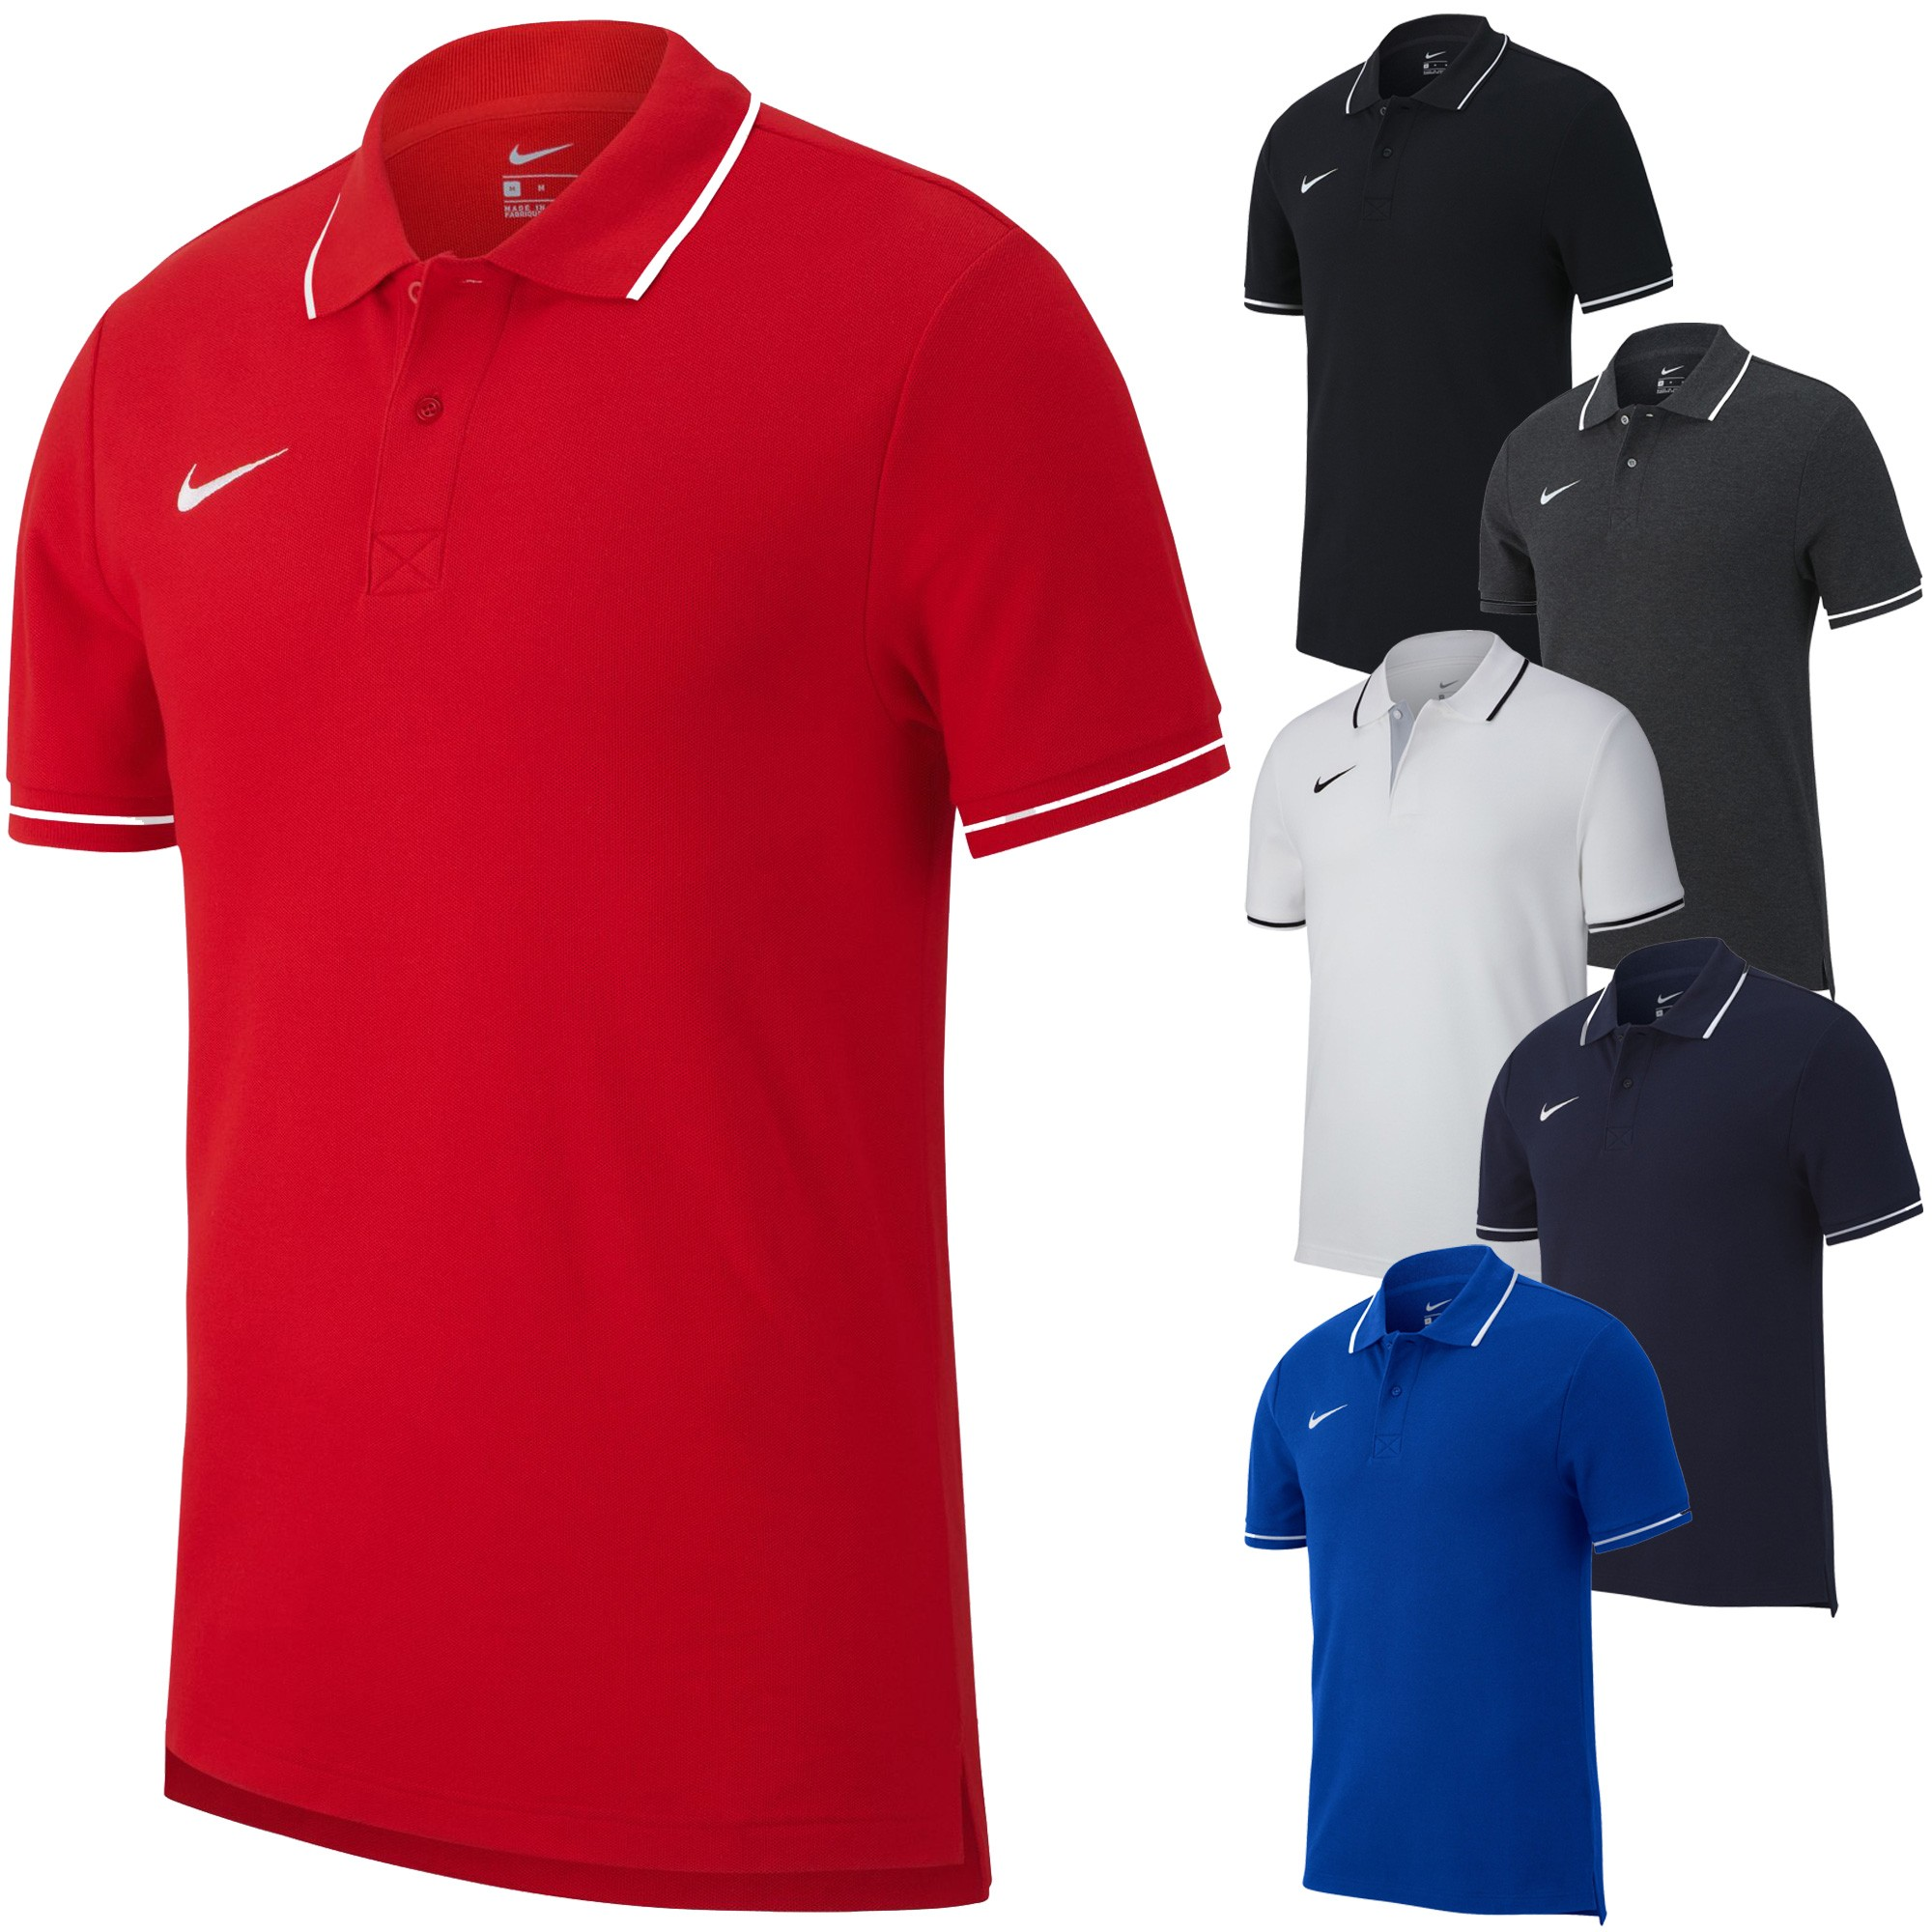 3252fc18 Polo Nike Team Club 19 Manches Courtes | Integral Sport